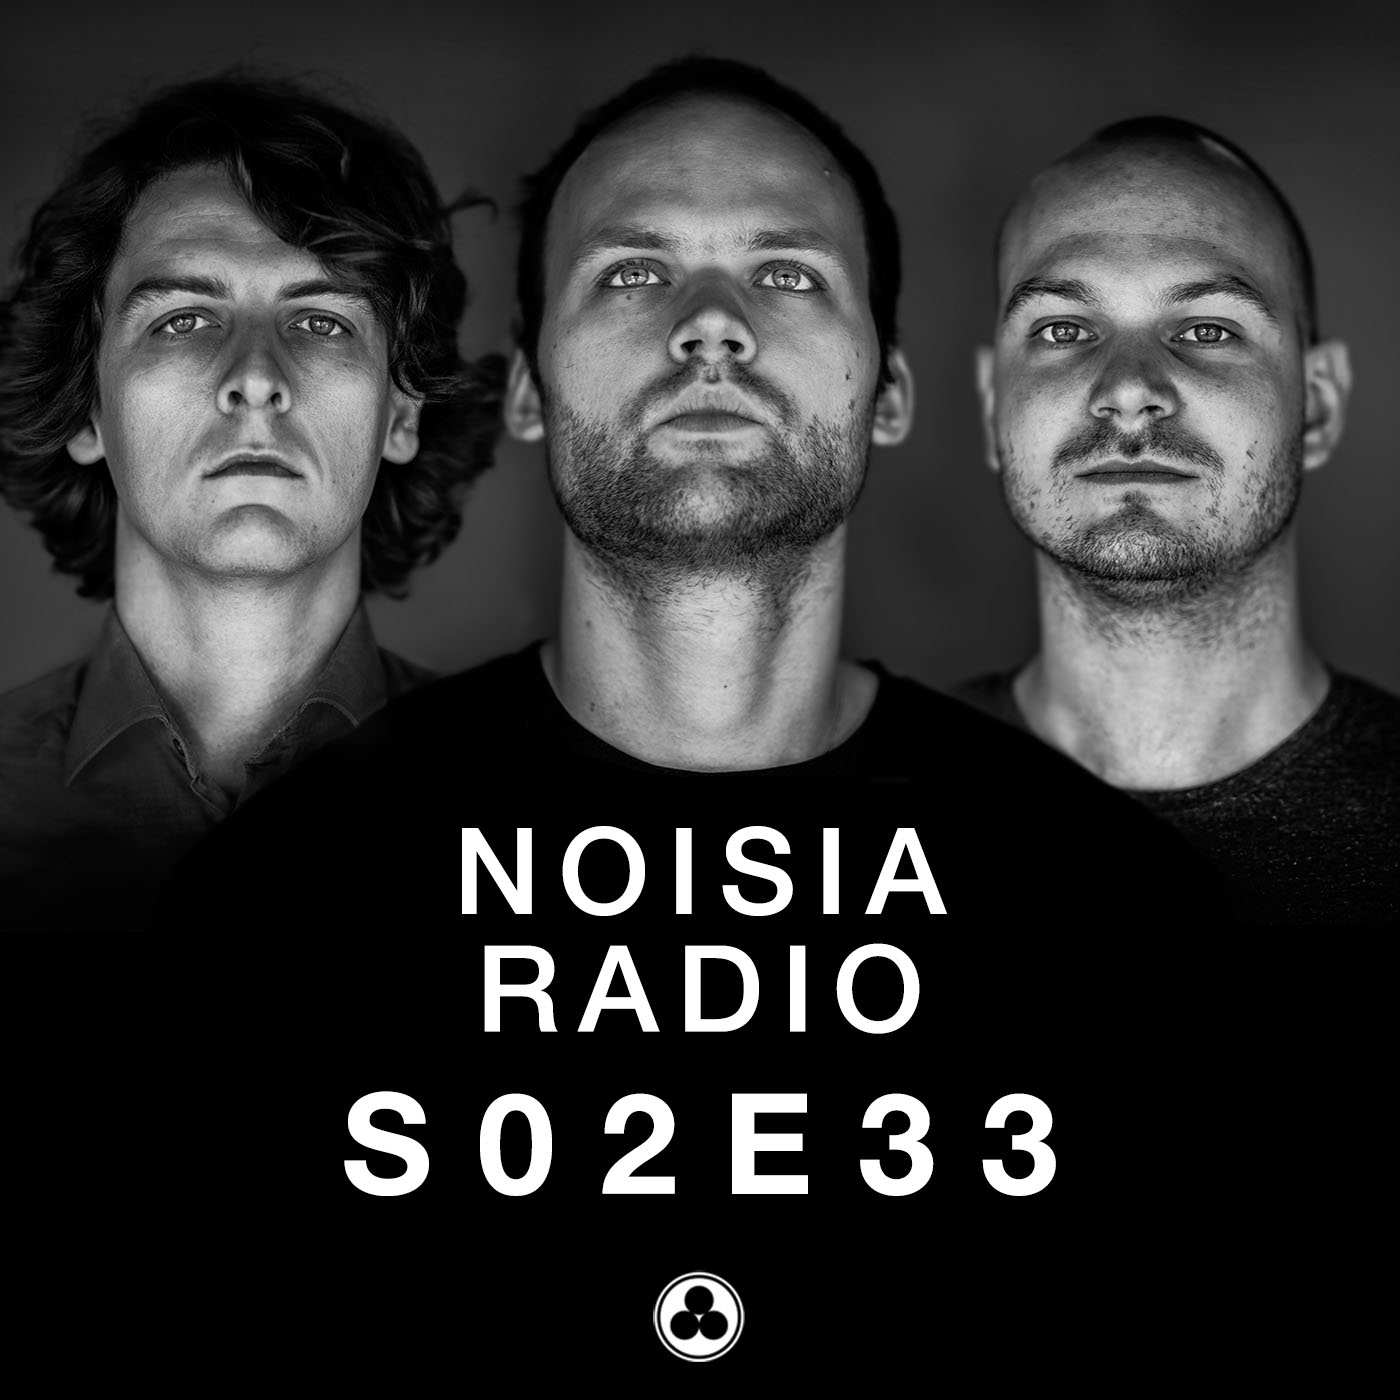 Noisia Radio S02E33